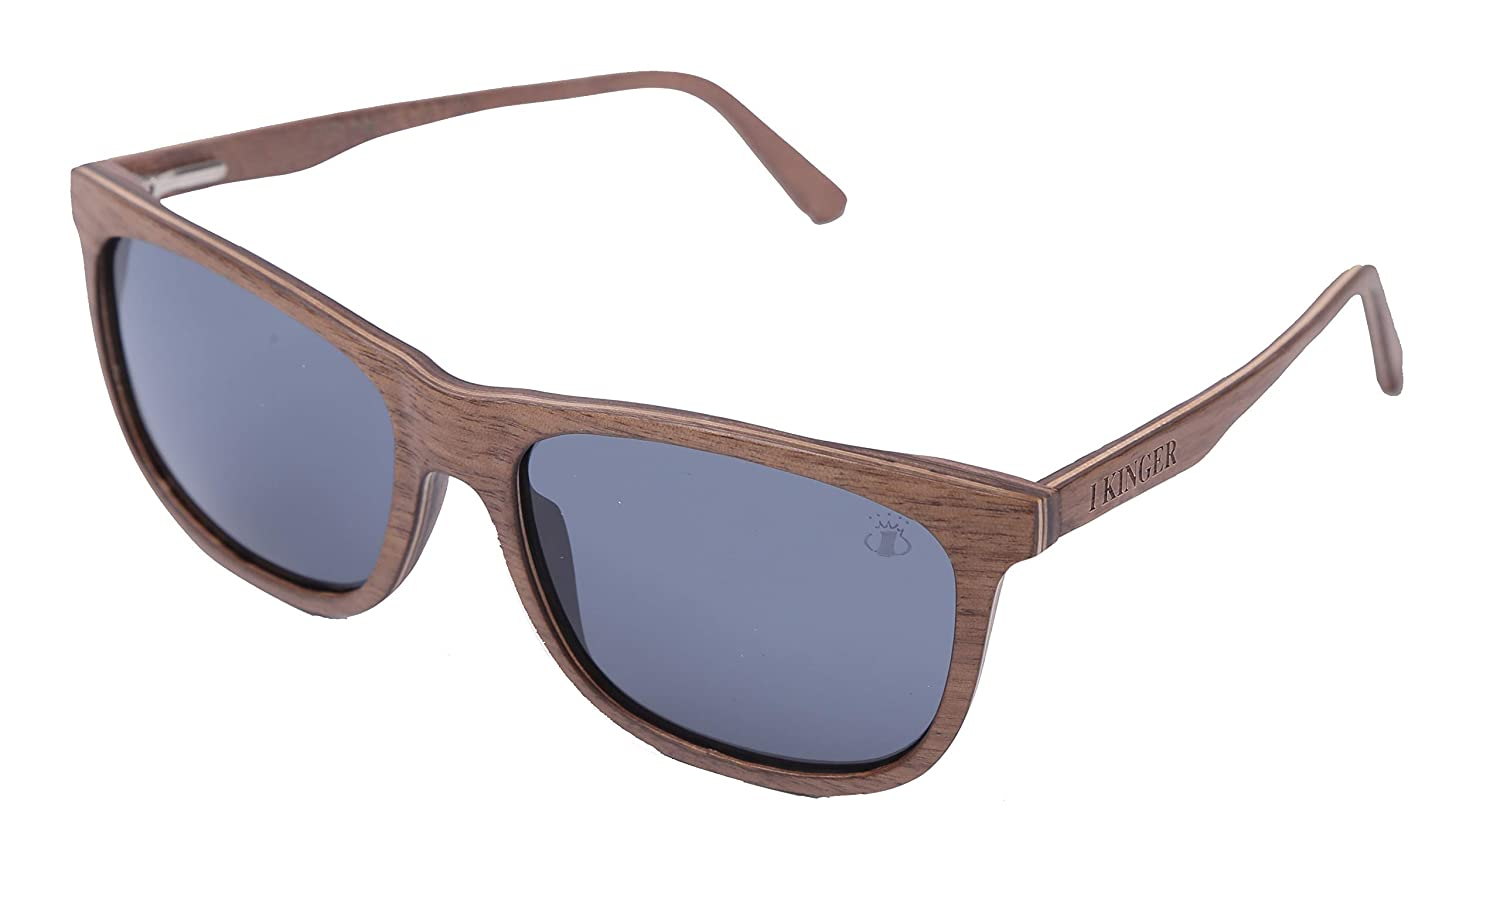 Sunglasses & Eyewear Accessories Accessories Wooden Polarized Sunglasses Handmade Sunglass Collection With Case,UV 400